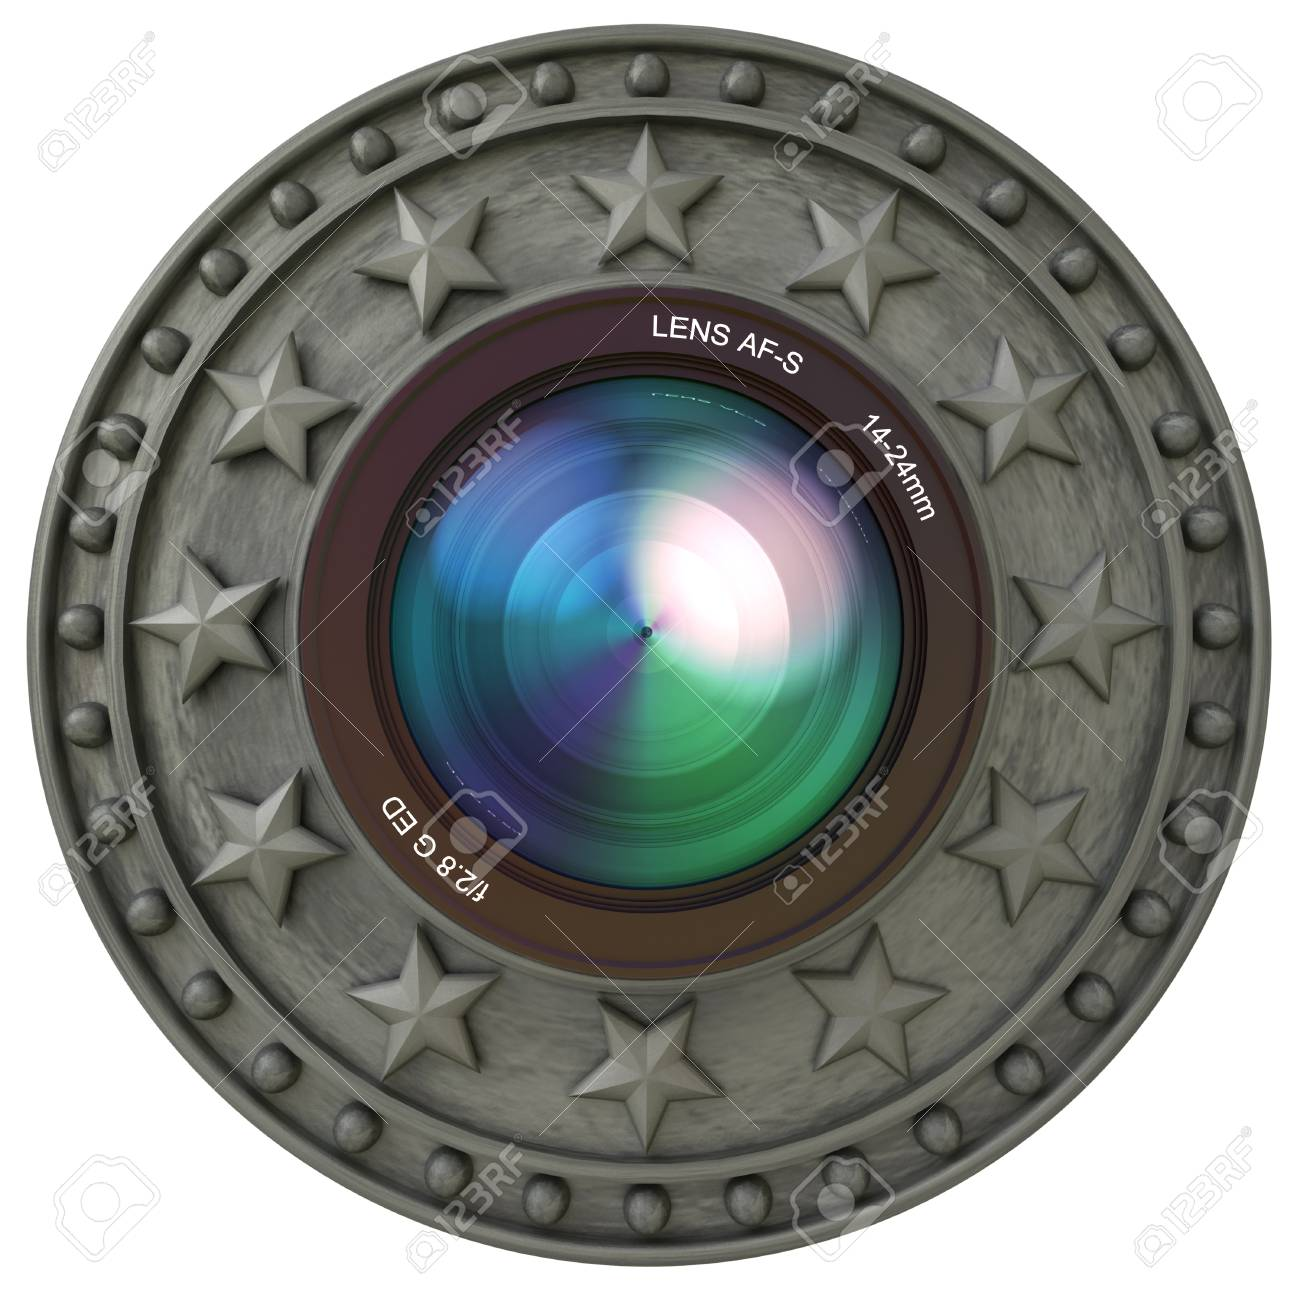 Camera Lens In A Insignia Frame Stock Photo, Picture And Royalty ...